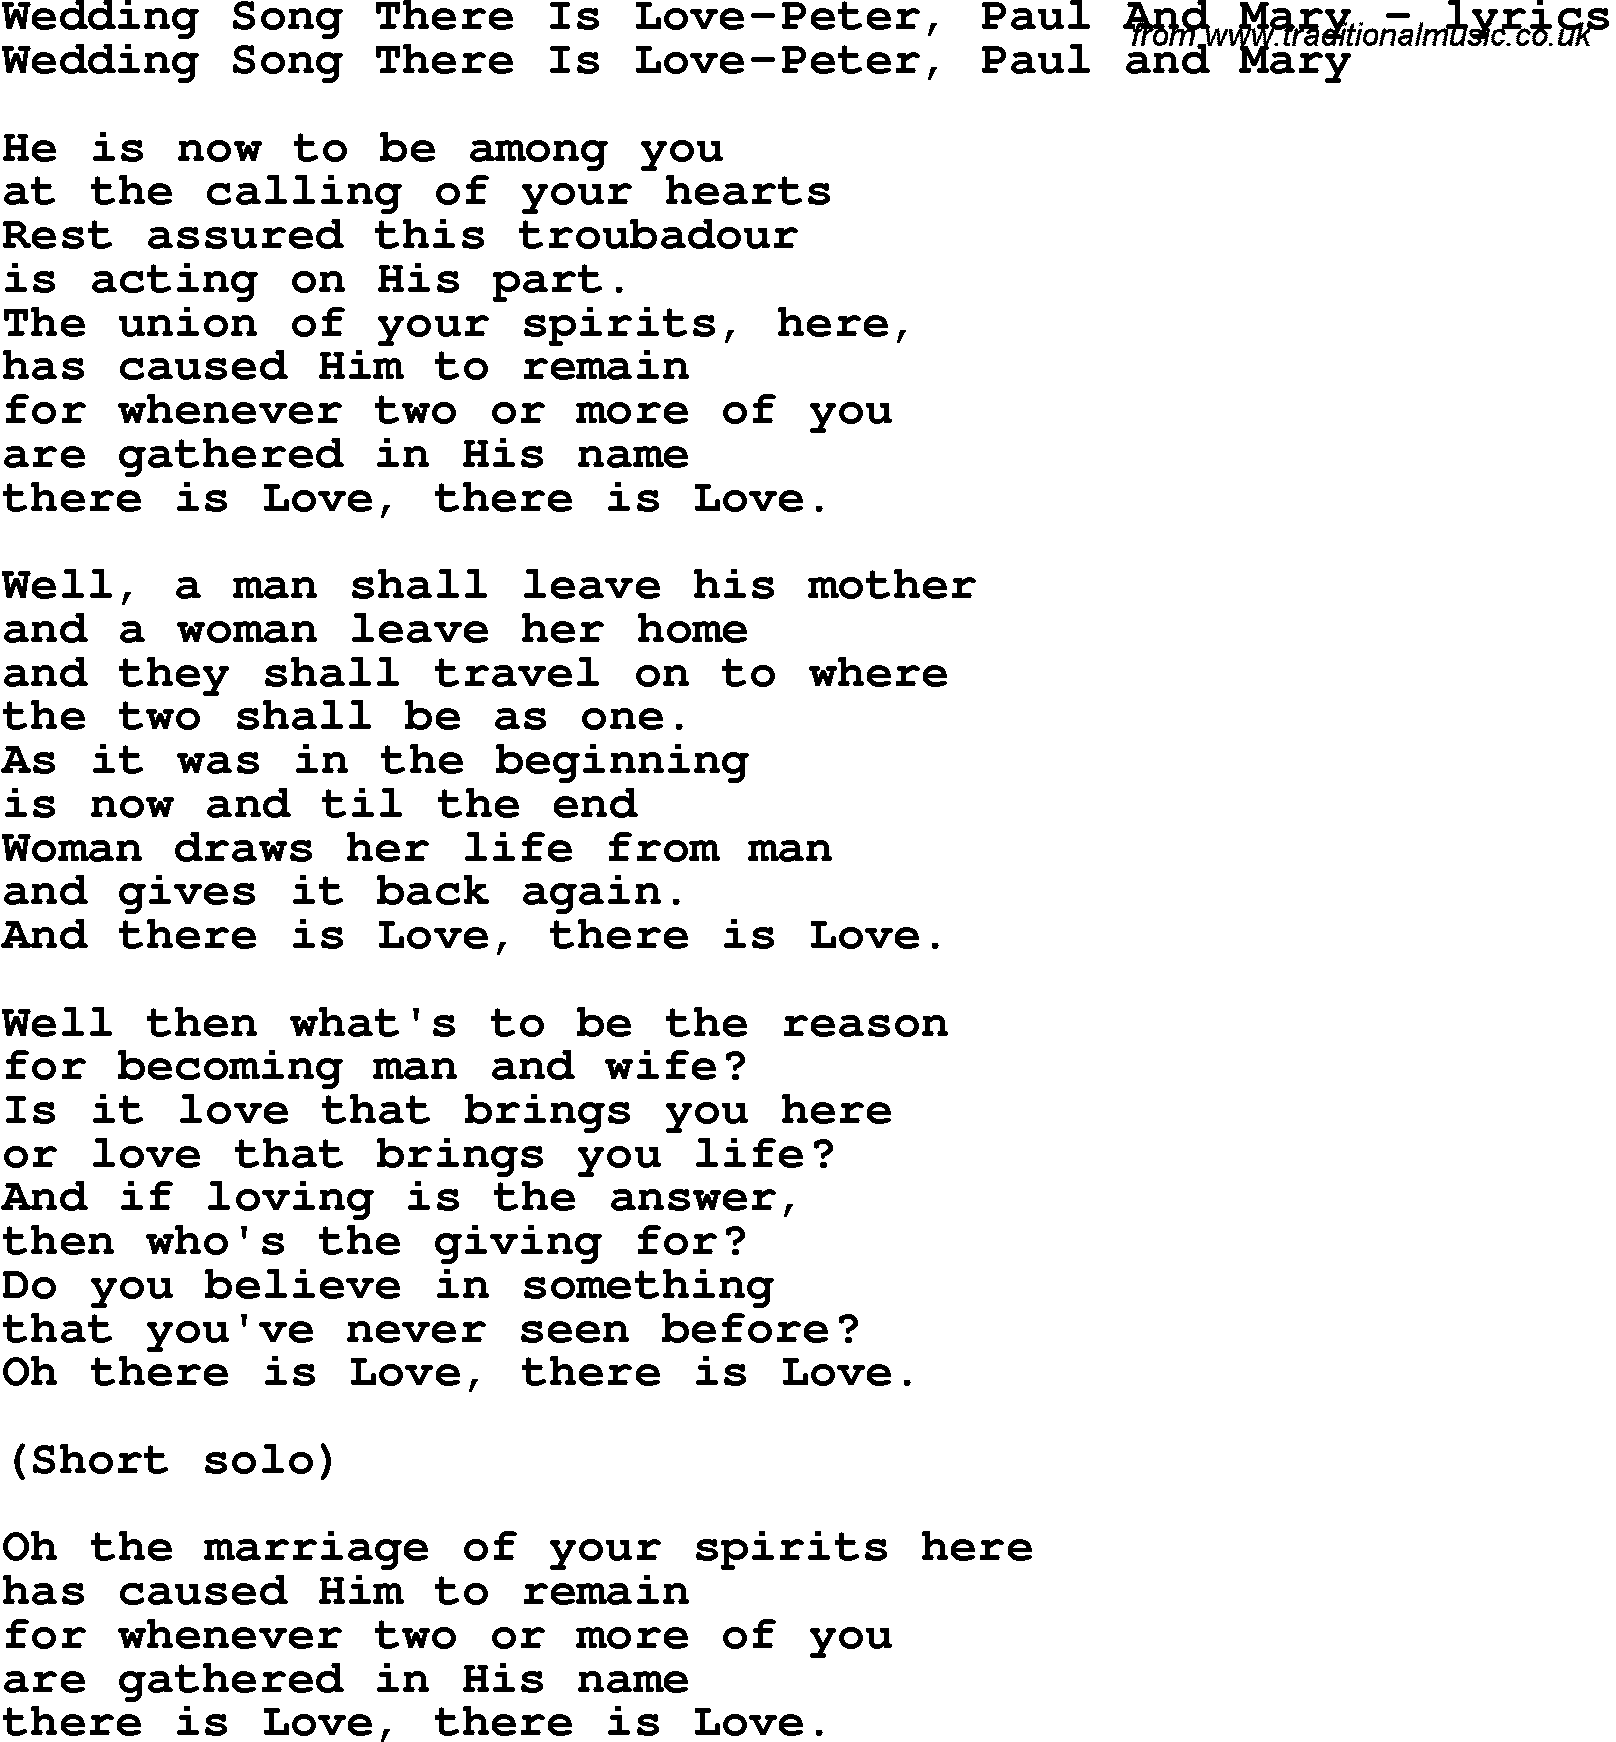 Love Song Lyrics For Wedding There Is Peter Paul And Mary